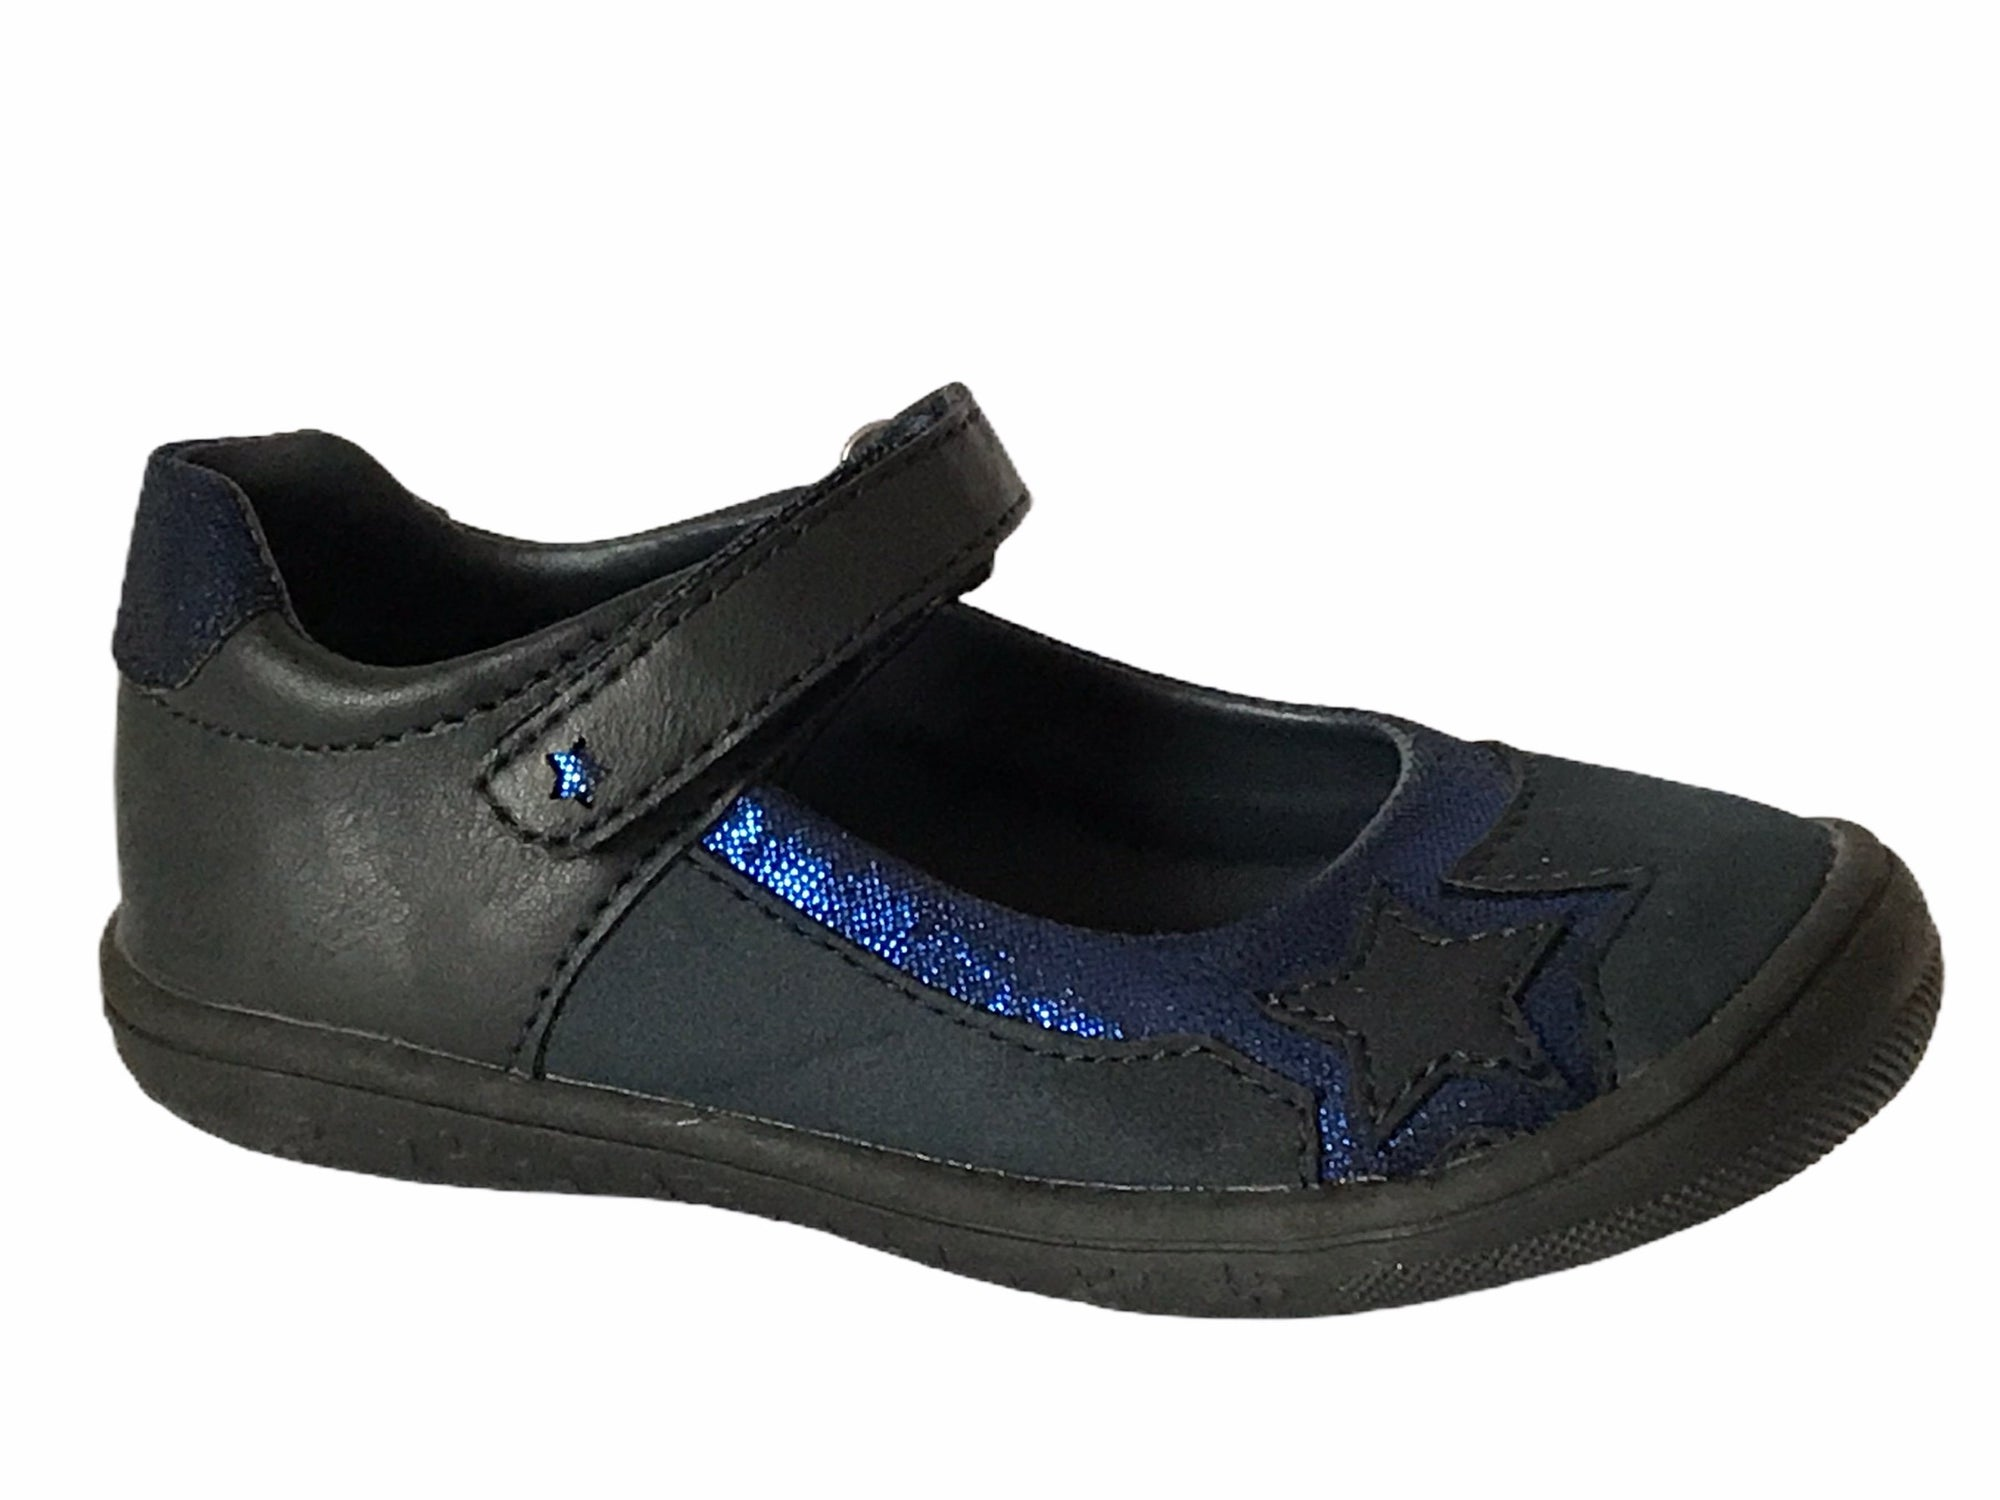 Bleufornce Girl Black & Blue Schuhe